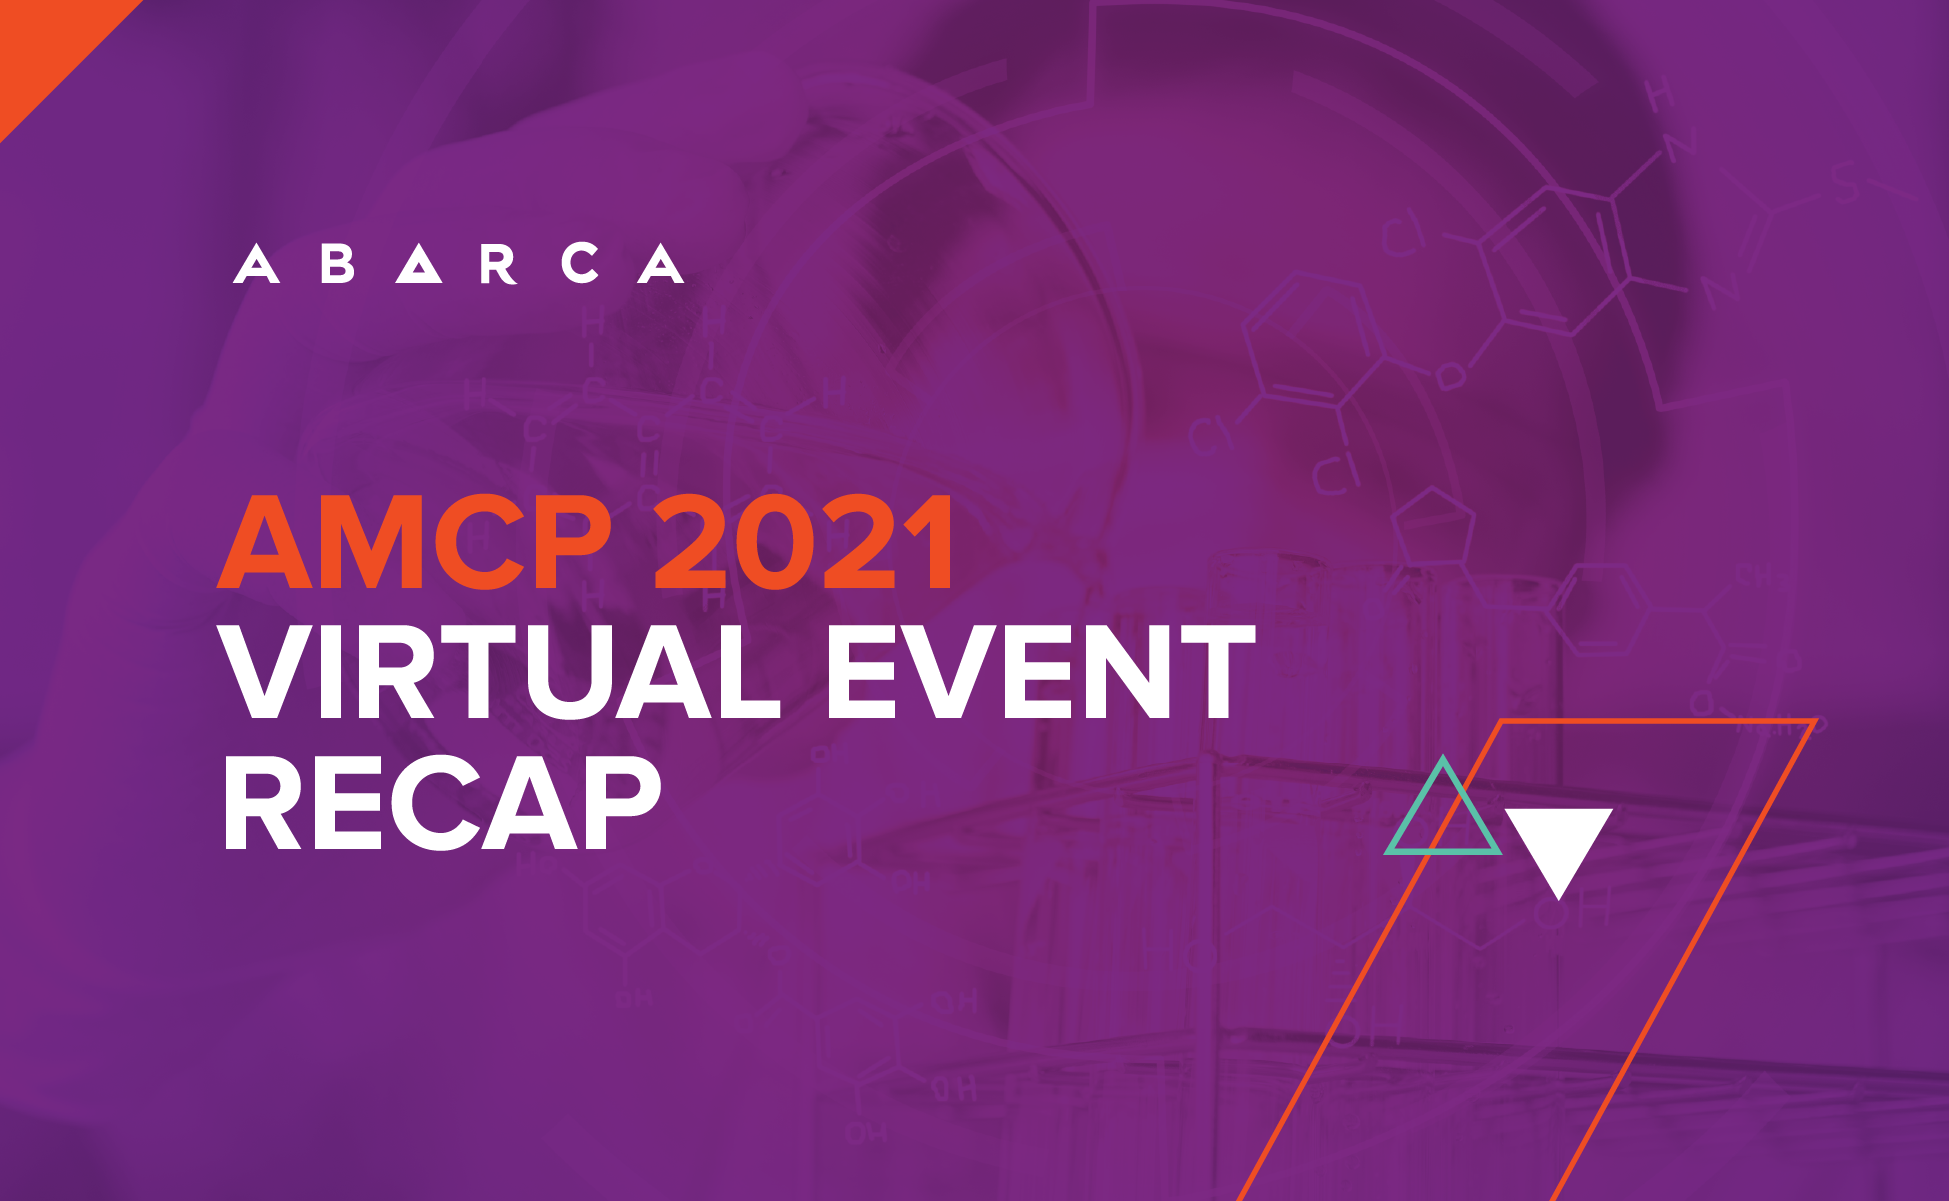 Abarca Health: Emerging trends from AMCP 2021